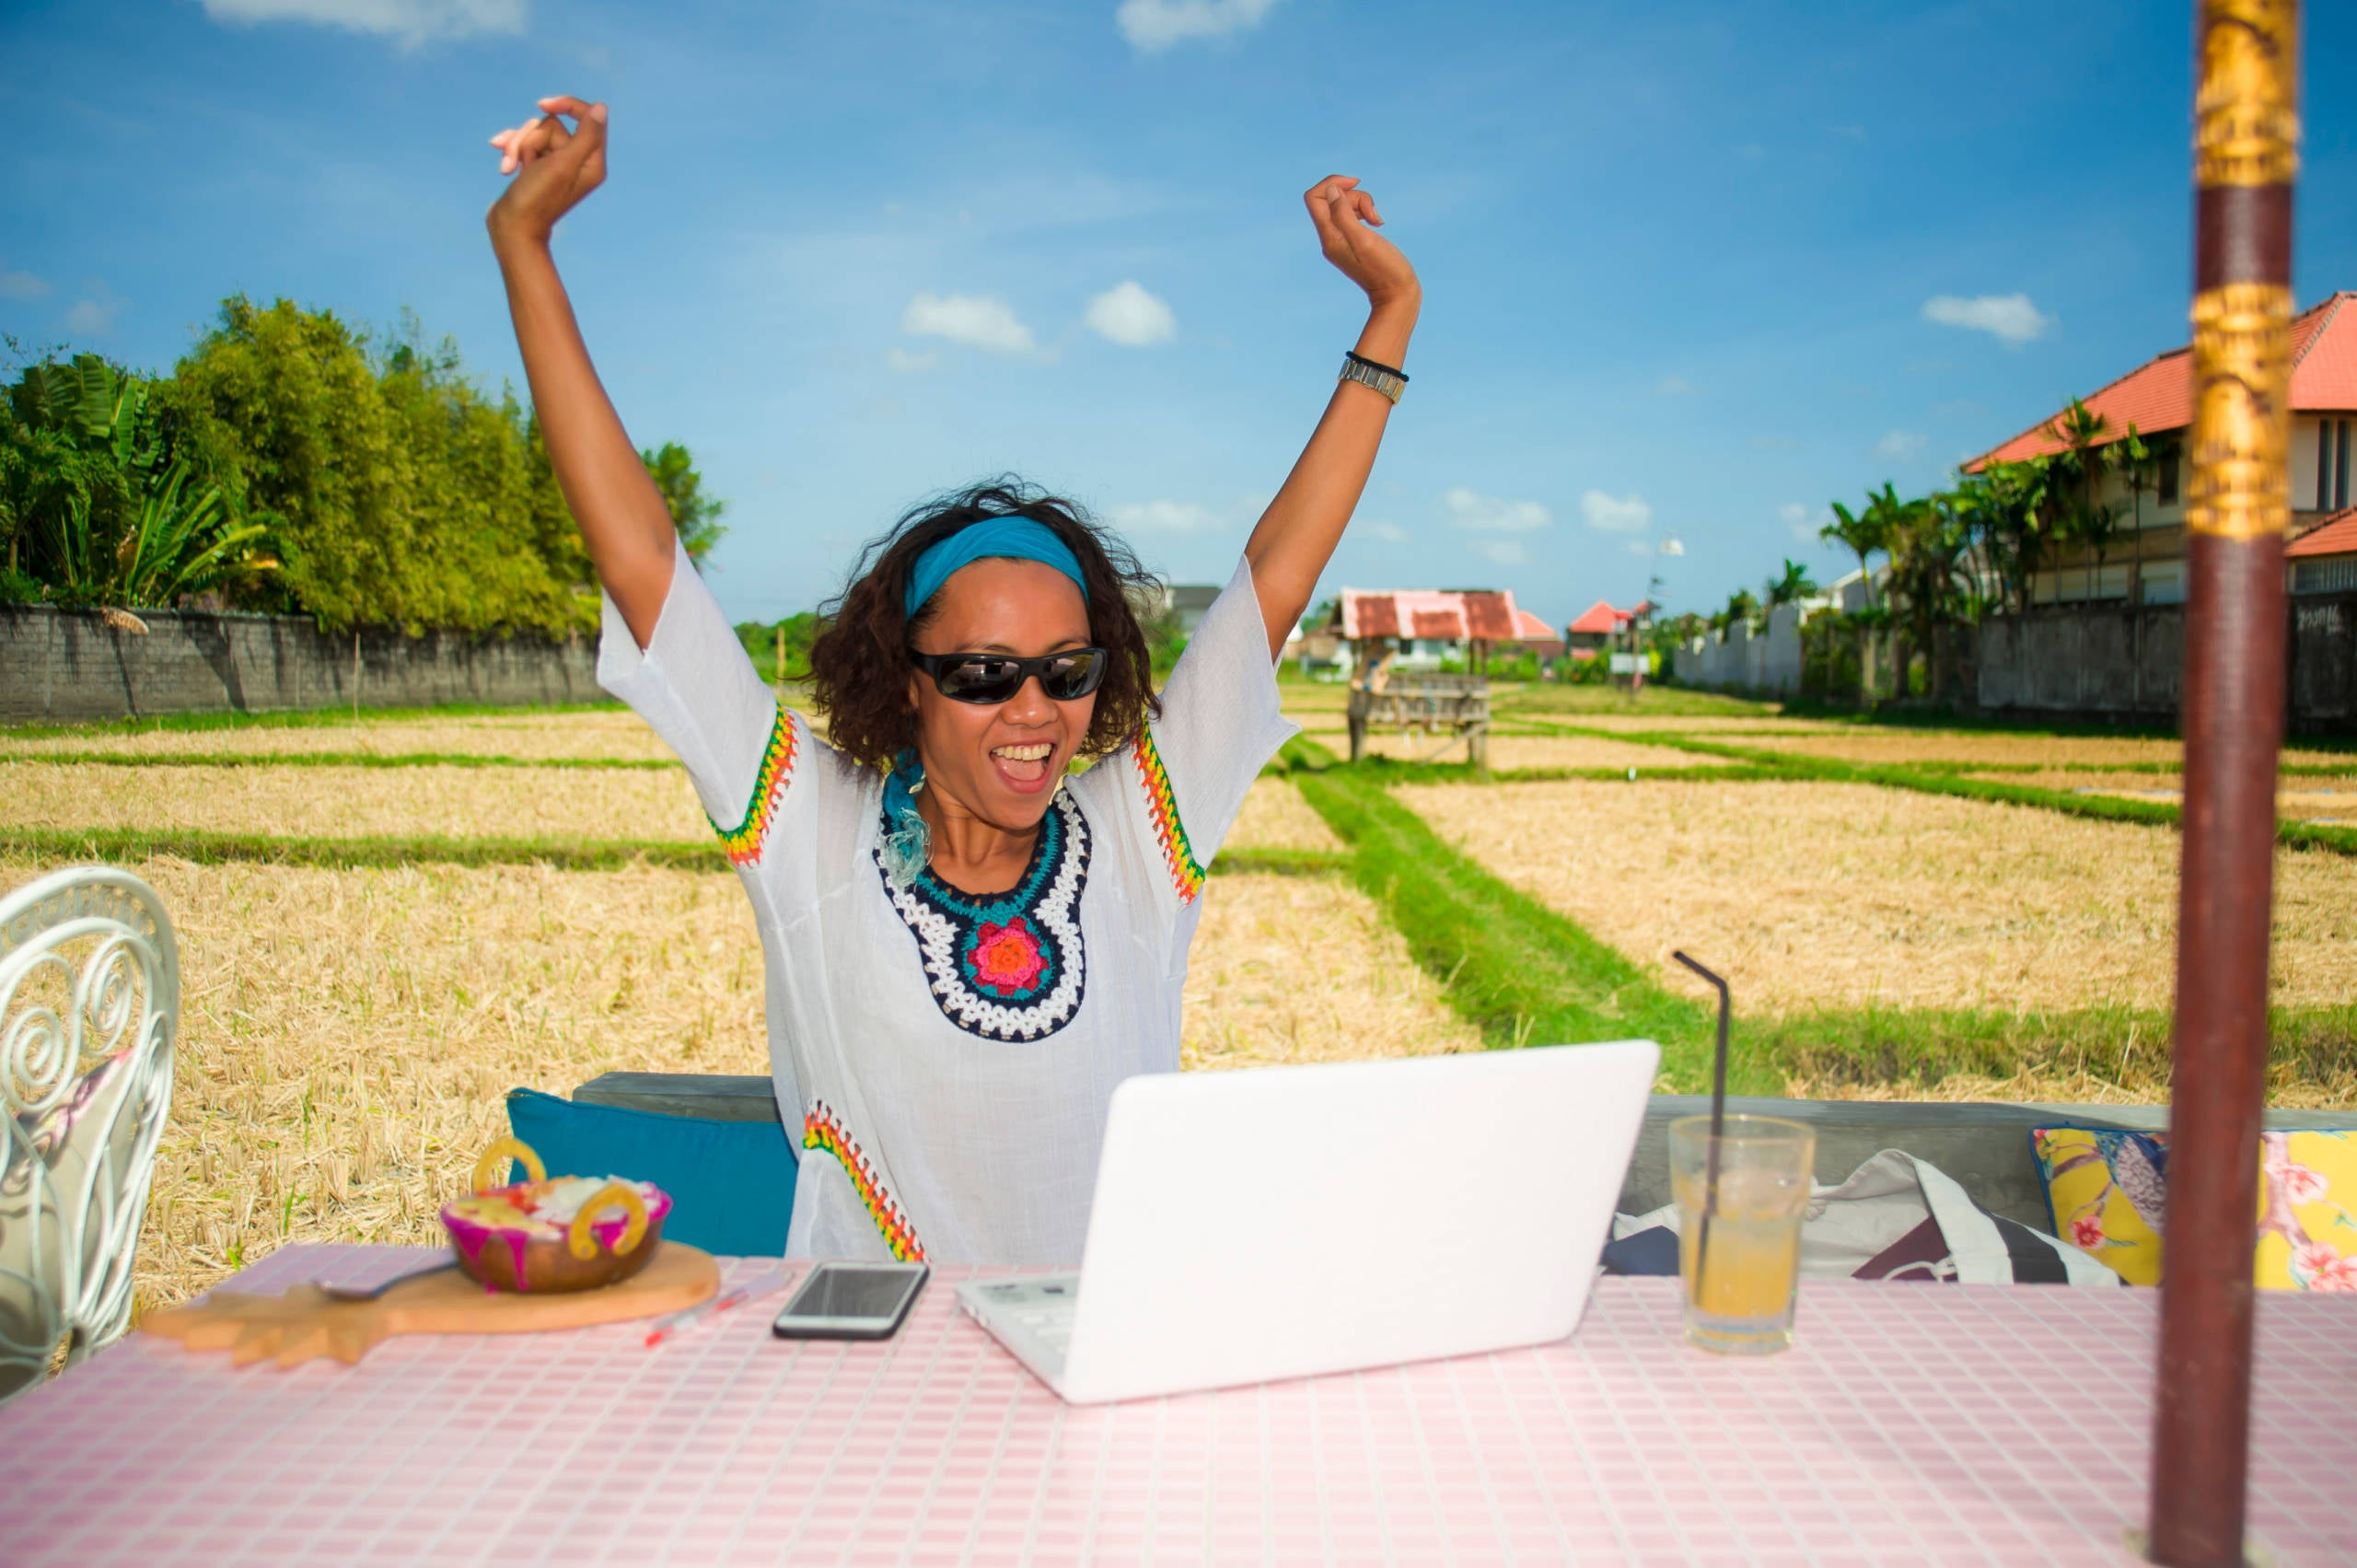 Bermuda, Georgia are the latest to offer a remote working abroad option